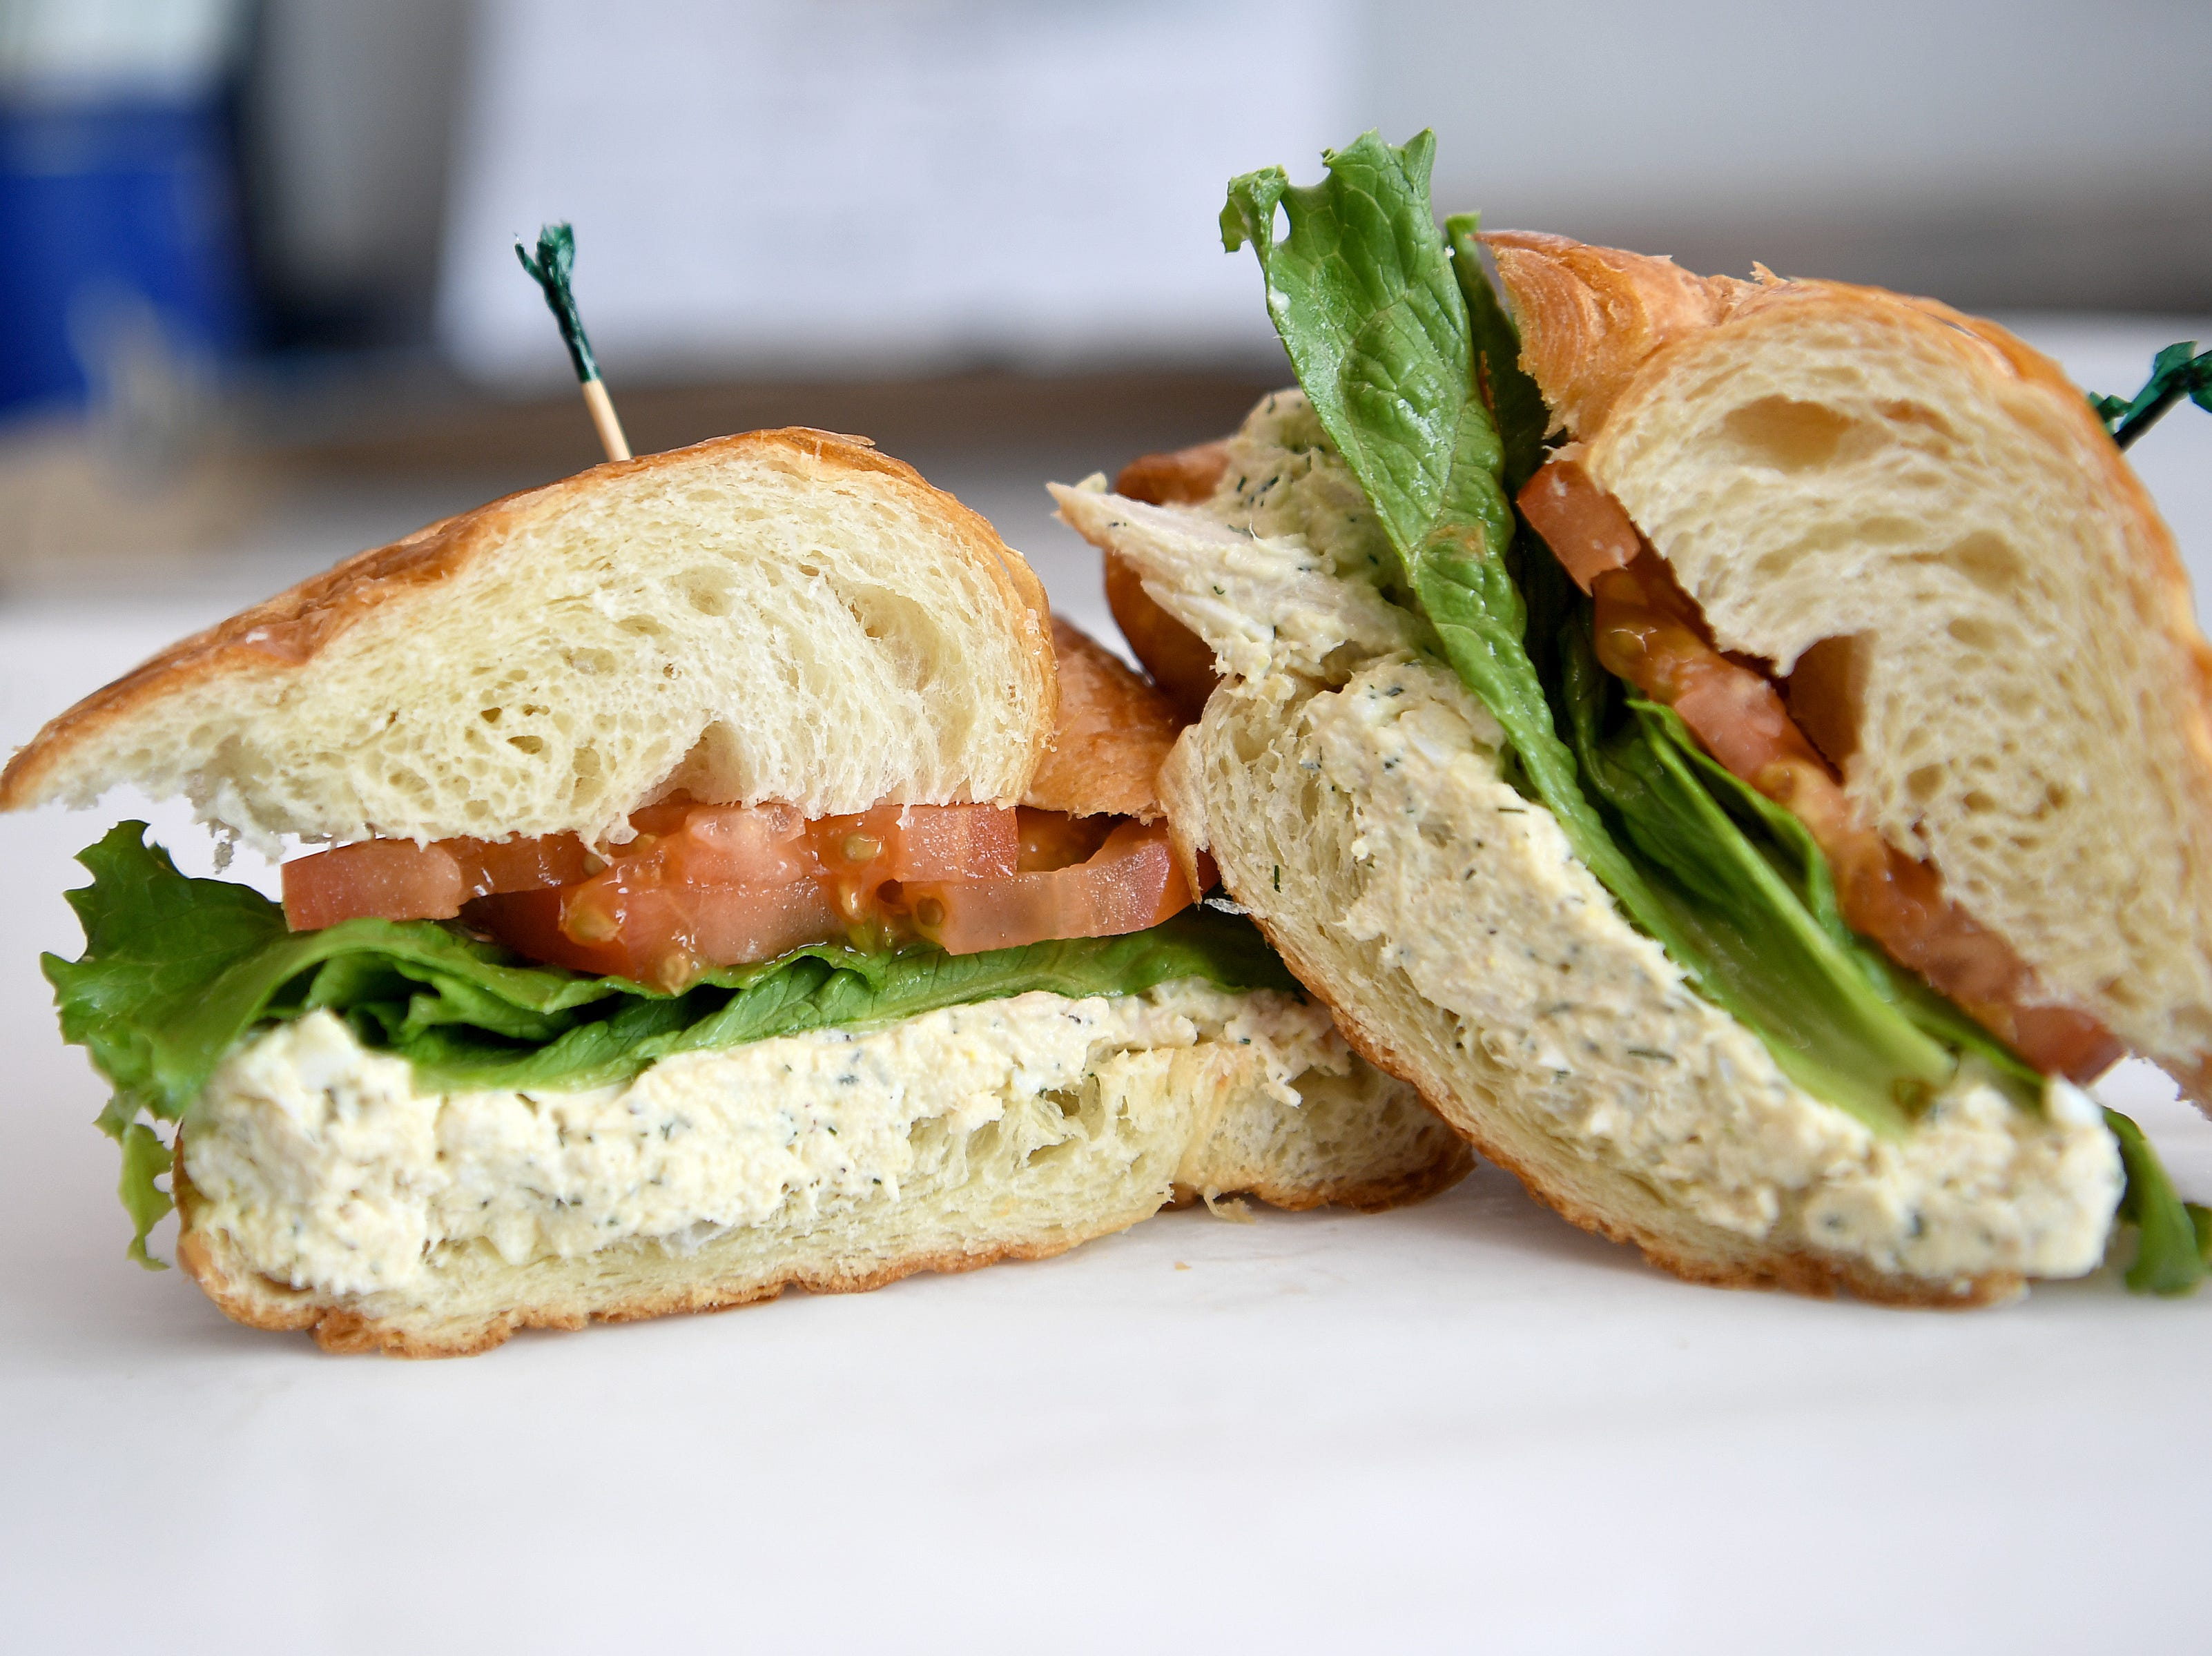 The chicken salad sandwich at High Test Deli and Sweet Shop on the South Slope is made with the deli's signature chicken salad on the customer's choice of bread.